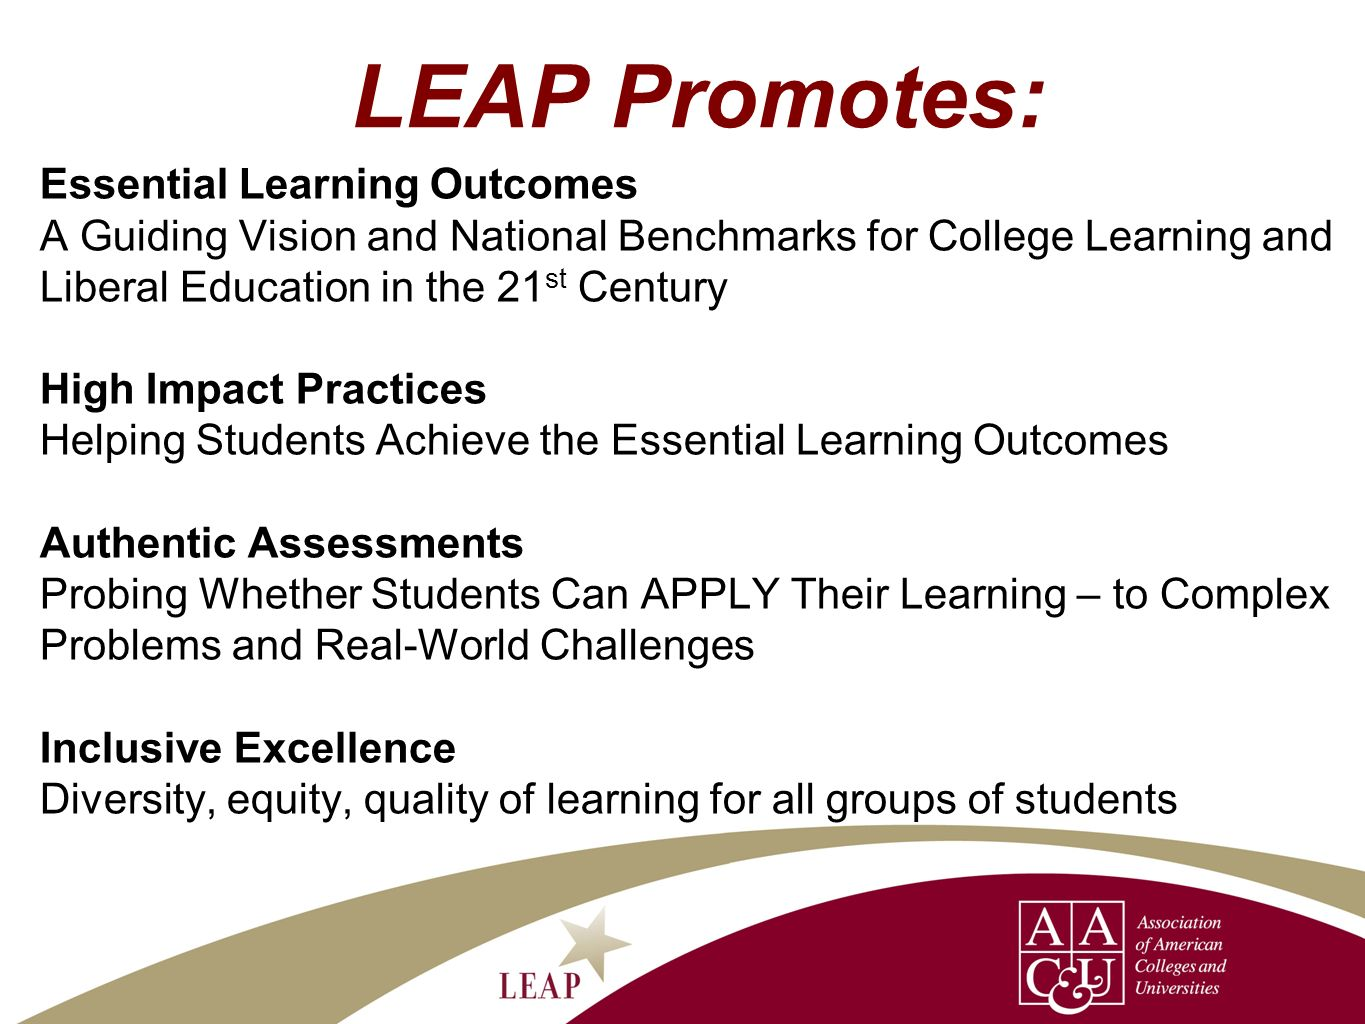 LEAP Promotes: Essential Learning Outcomes A Guiding Vision and National Benchmarks for College Learning and Liberal Education in the 21 st Century High Impact Practices Helping Students Achieve the Essential Learning Outcomes Authentic Assessments Probing Whether Students Can APPLY Their Learning – to Complex Problems and Real-World Challenges Inclusive Excellence Diversity, equity, quality of learning for all groups of students